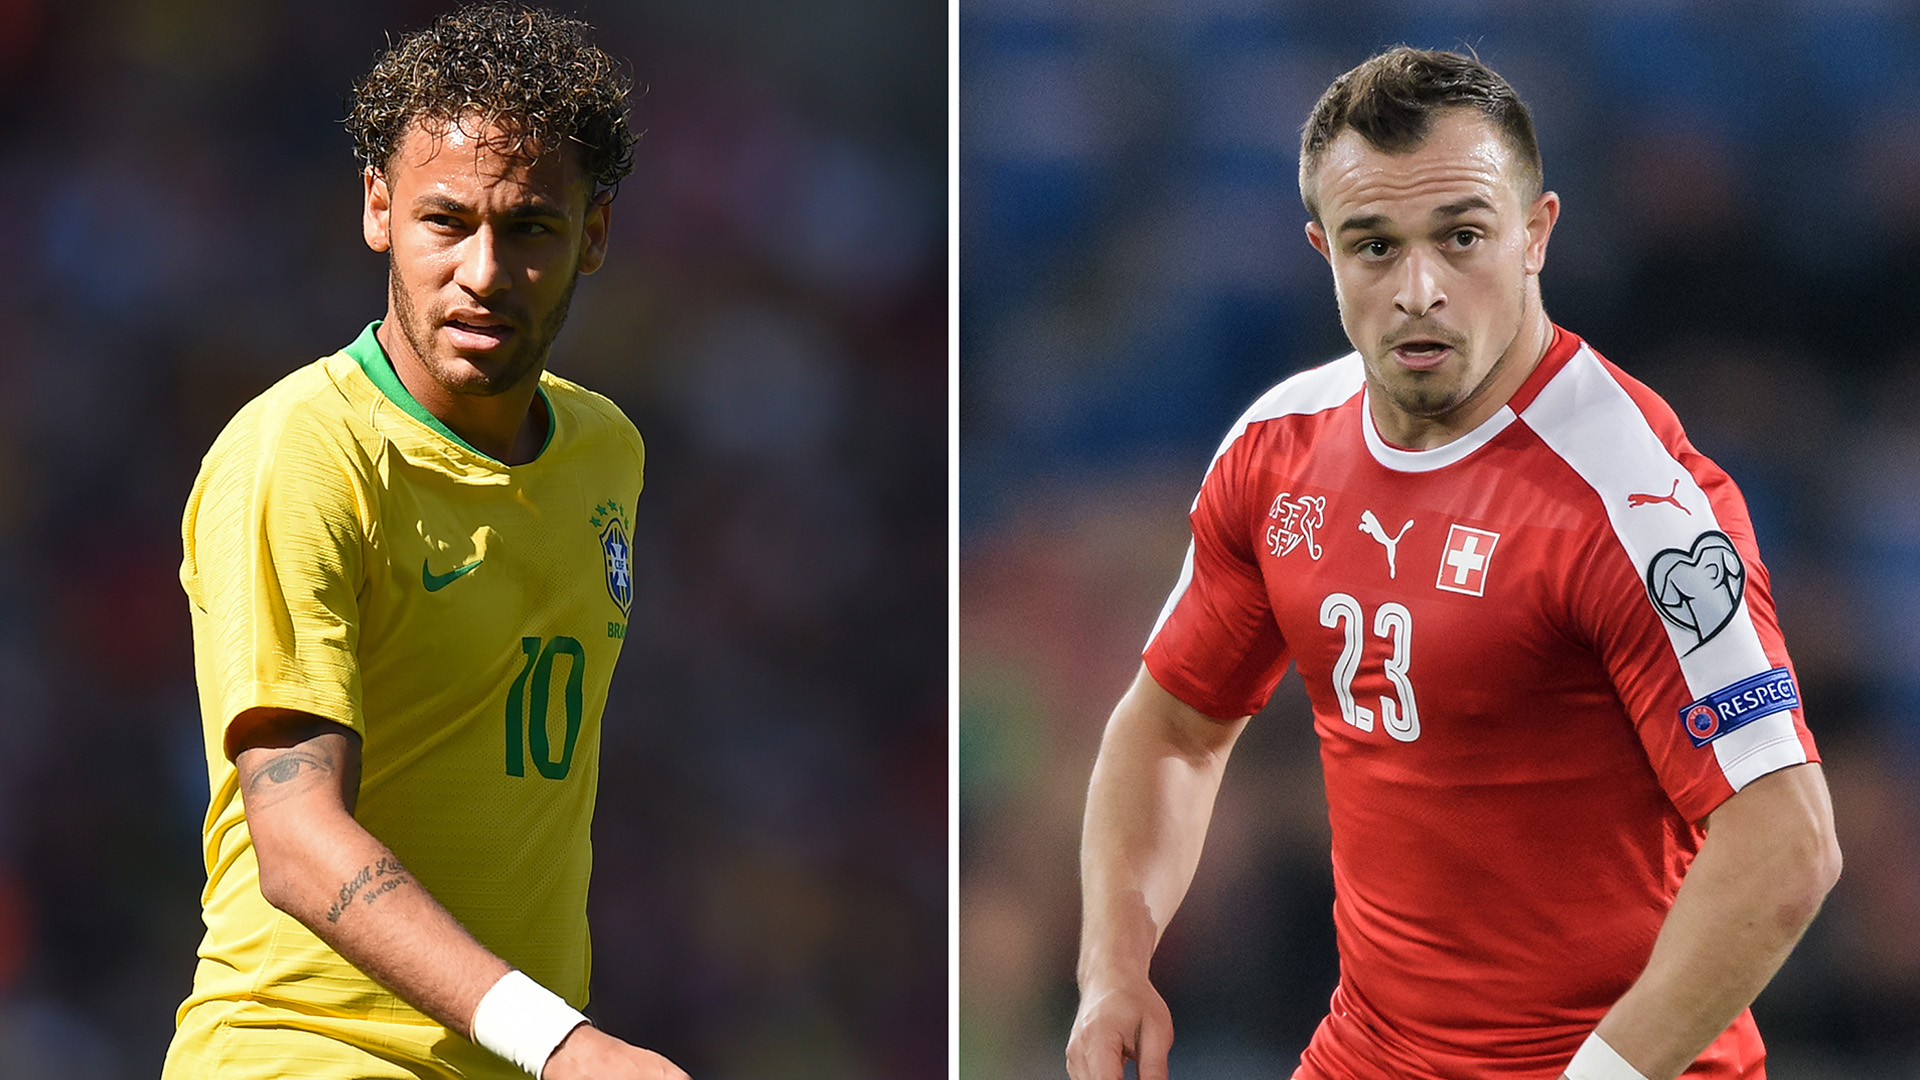 Brazil, Switzerland end their World Cup group stage match in draw